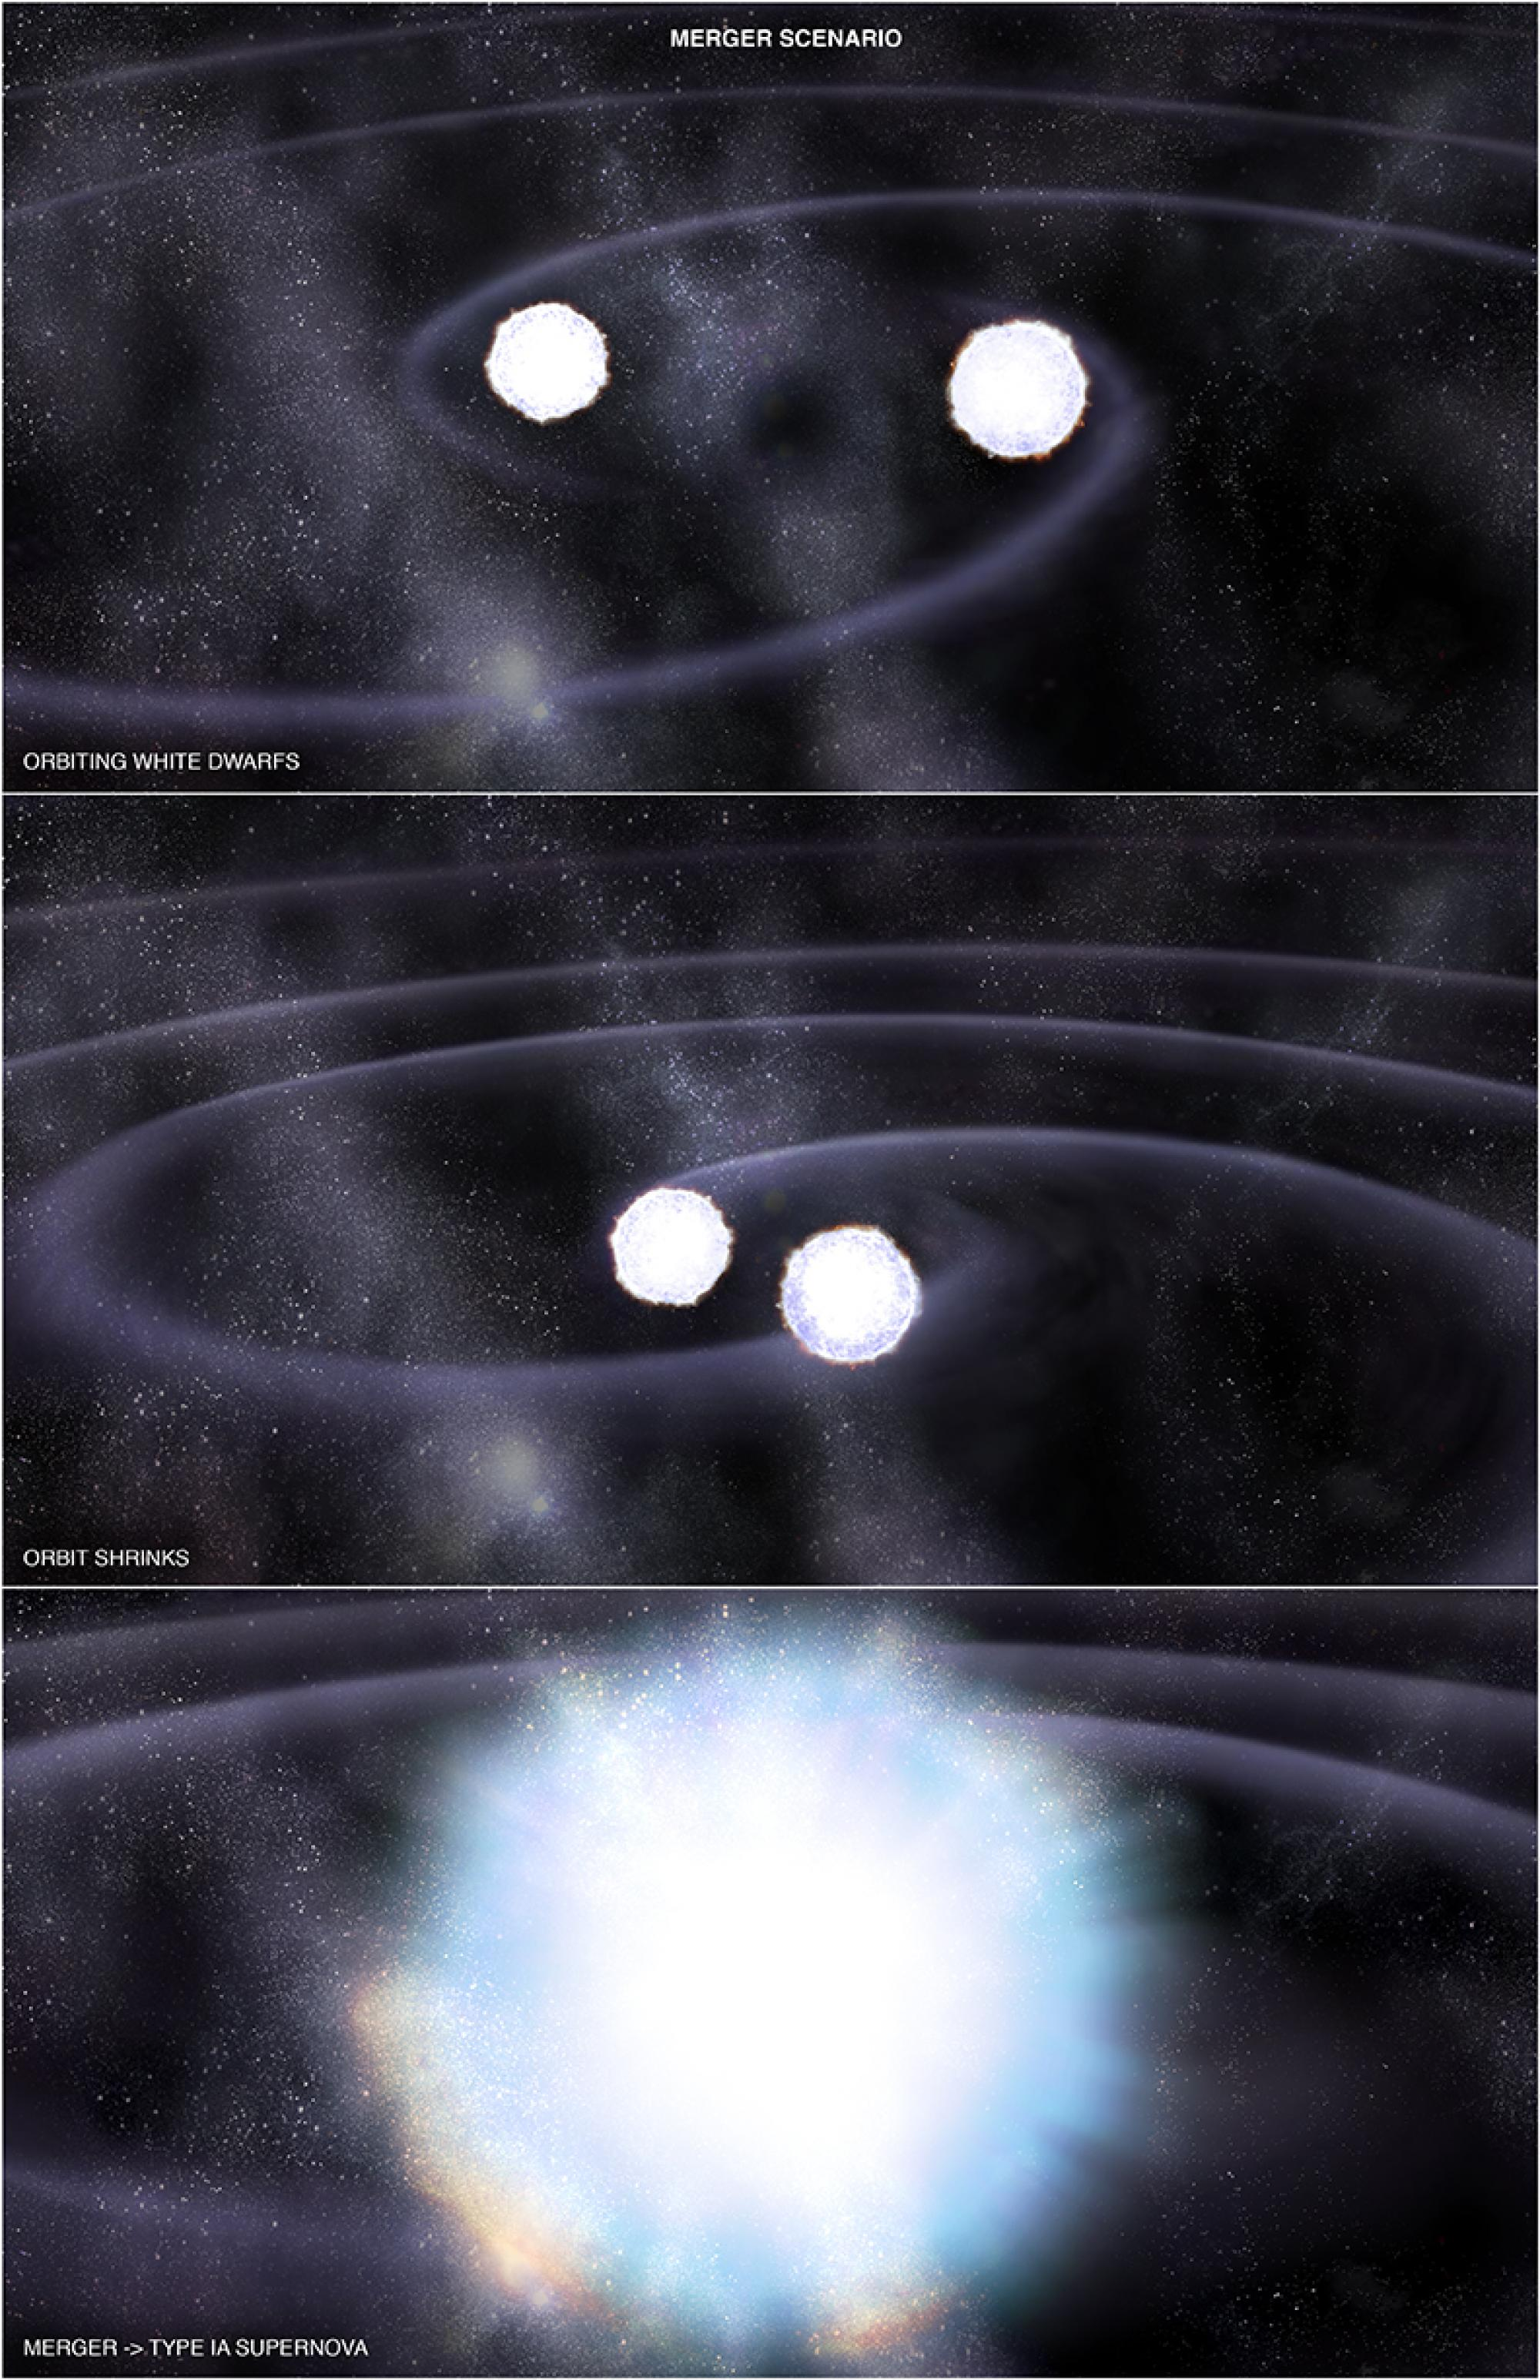 In one of two possible scenarios leading to a Type Ia supernova, two white dwarf stars orbit each other and lose energy via gravitational radiation, eventually resulting in a merger between the two stars. Because the total mass of this merger exceeds the